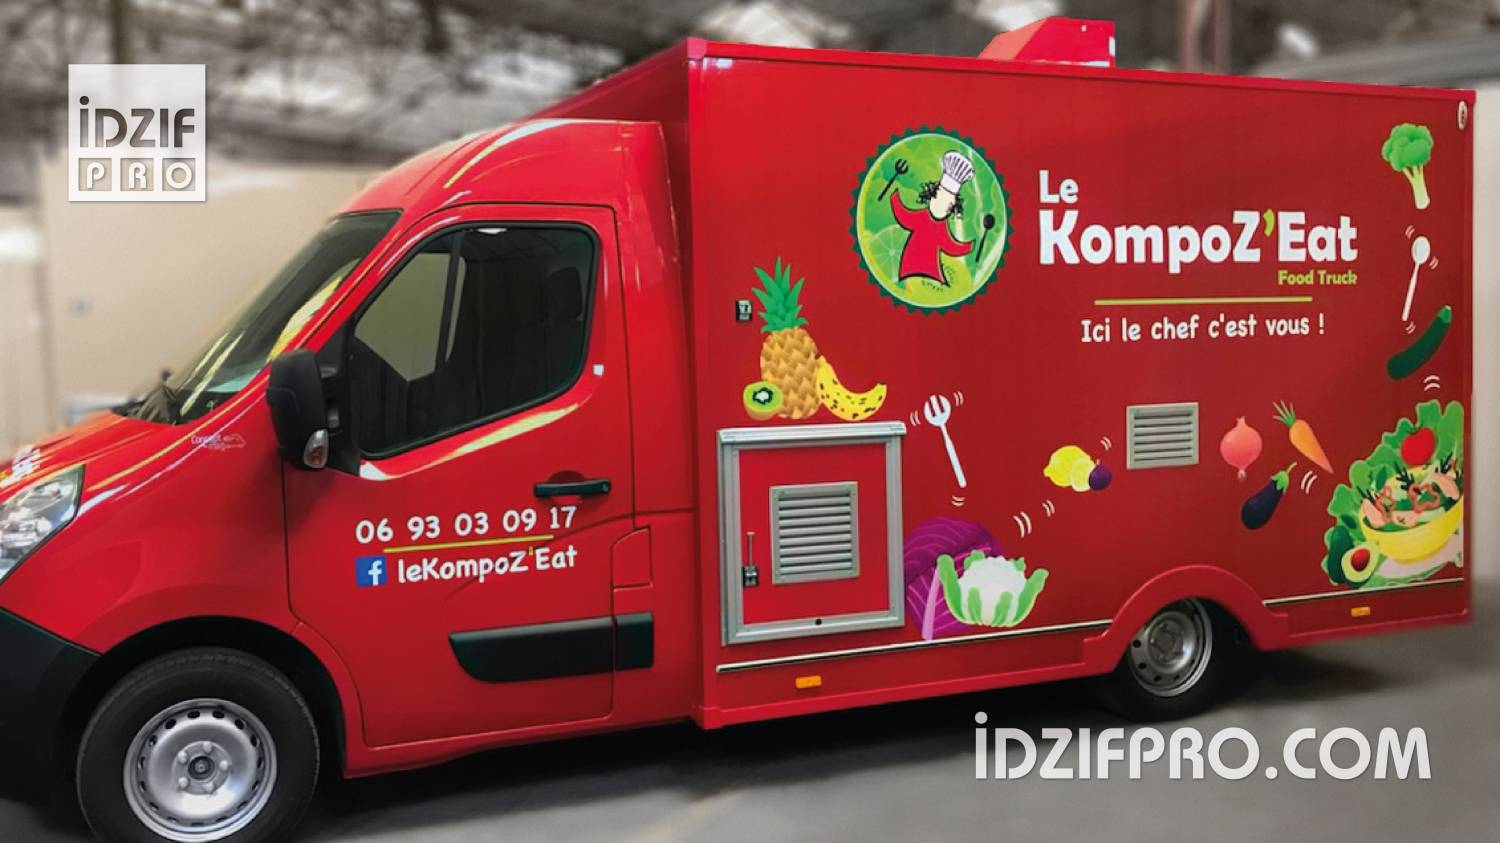 Covering publicitaire sur food truck